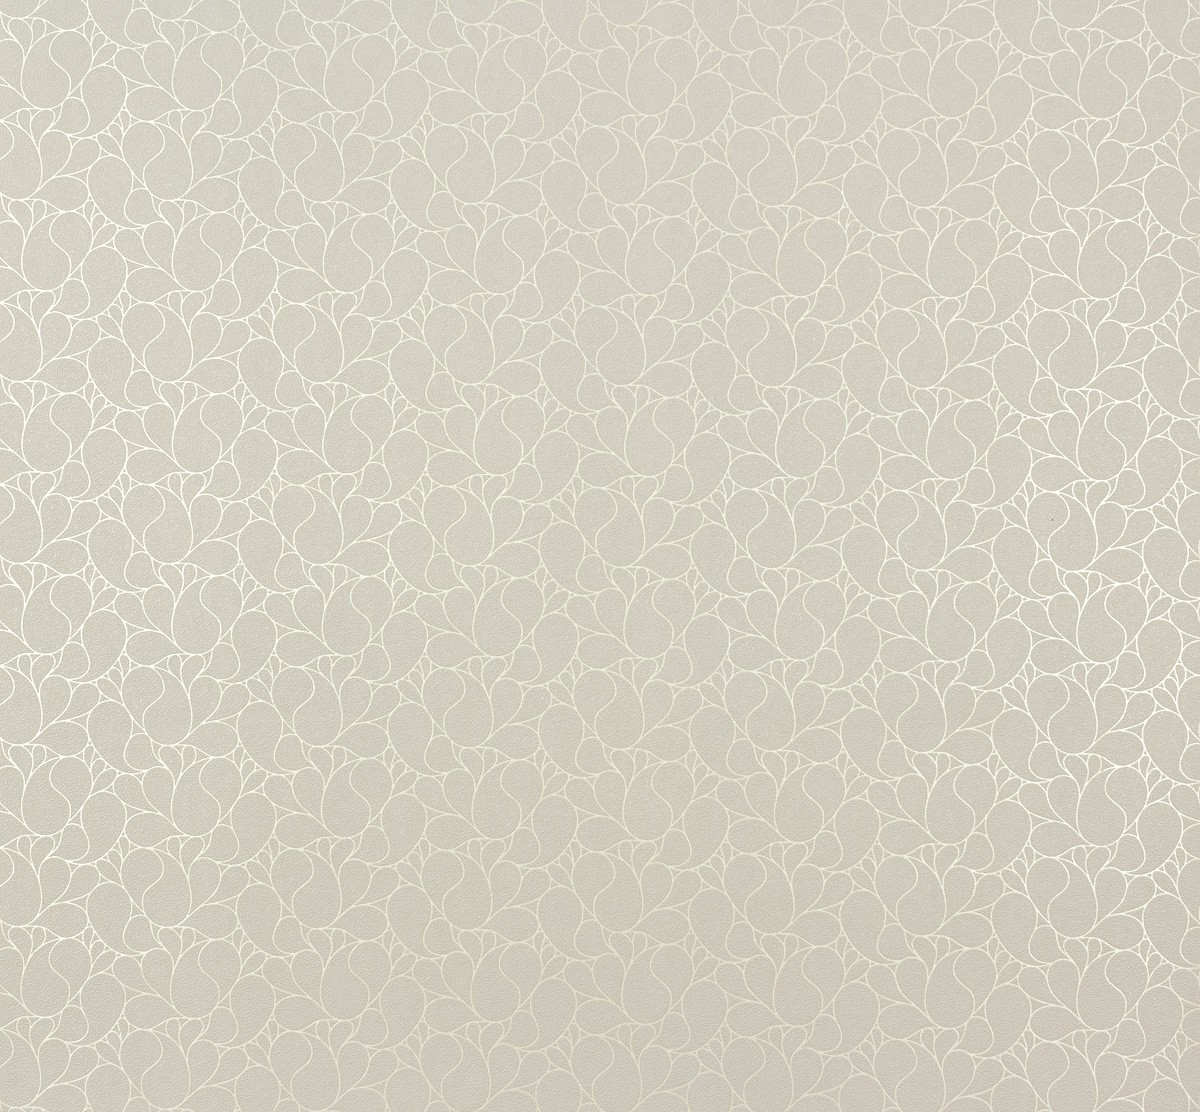 Vliestapete marburg messina 55416 design grau beige for Tapeten marburg